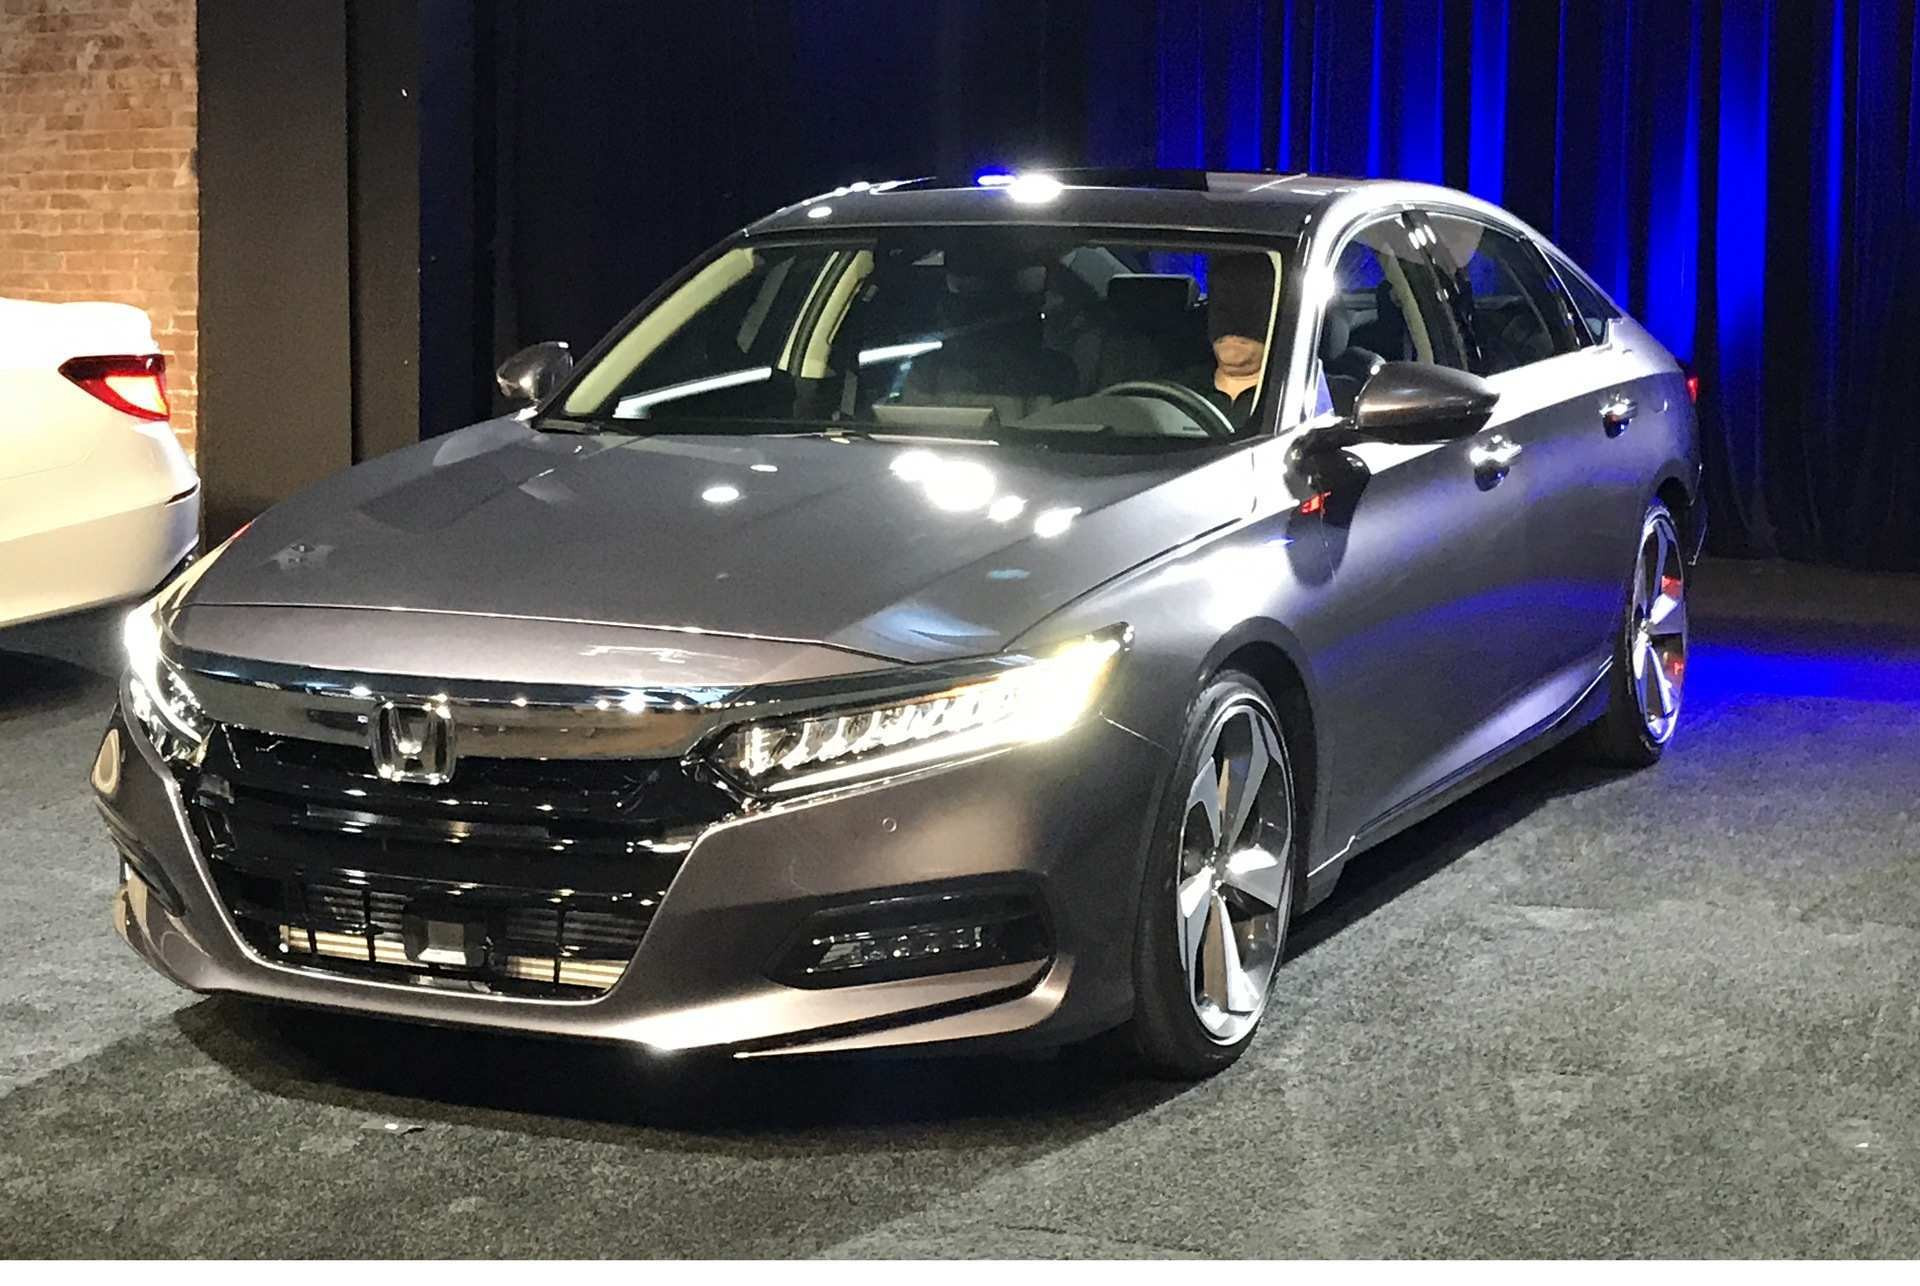 18 New Honda Accord 2020 Redesign Price Design And Review